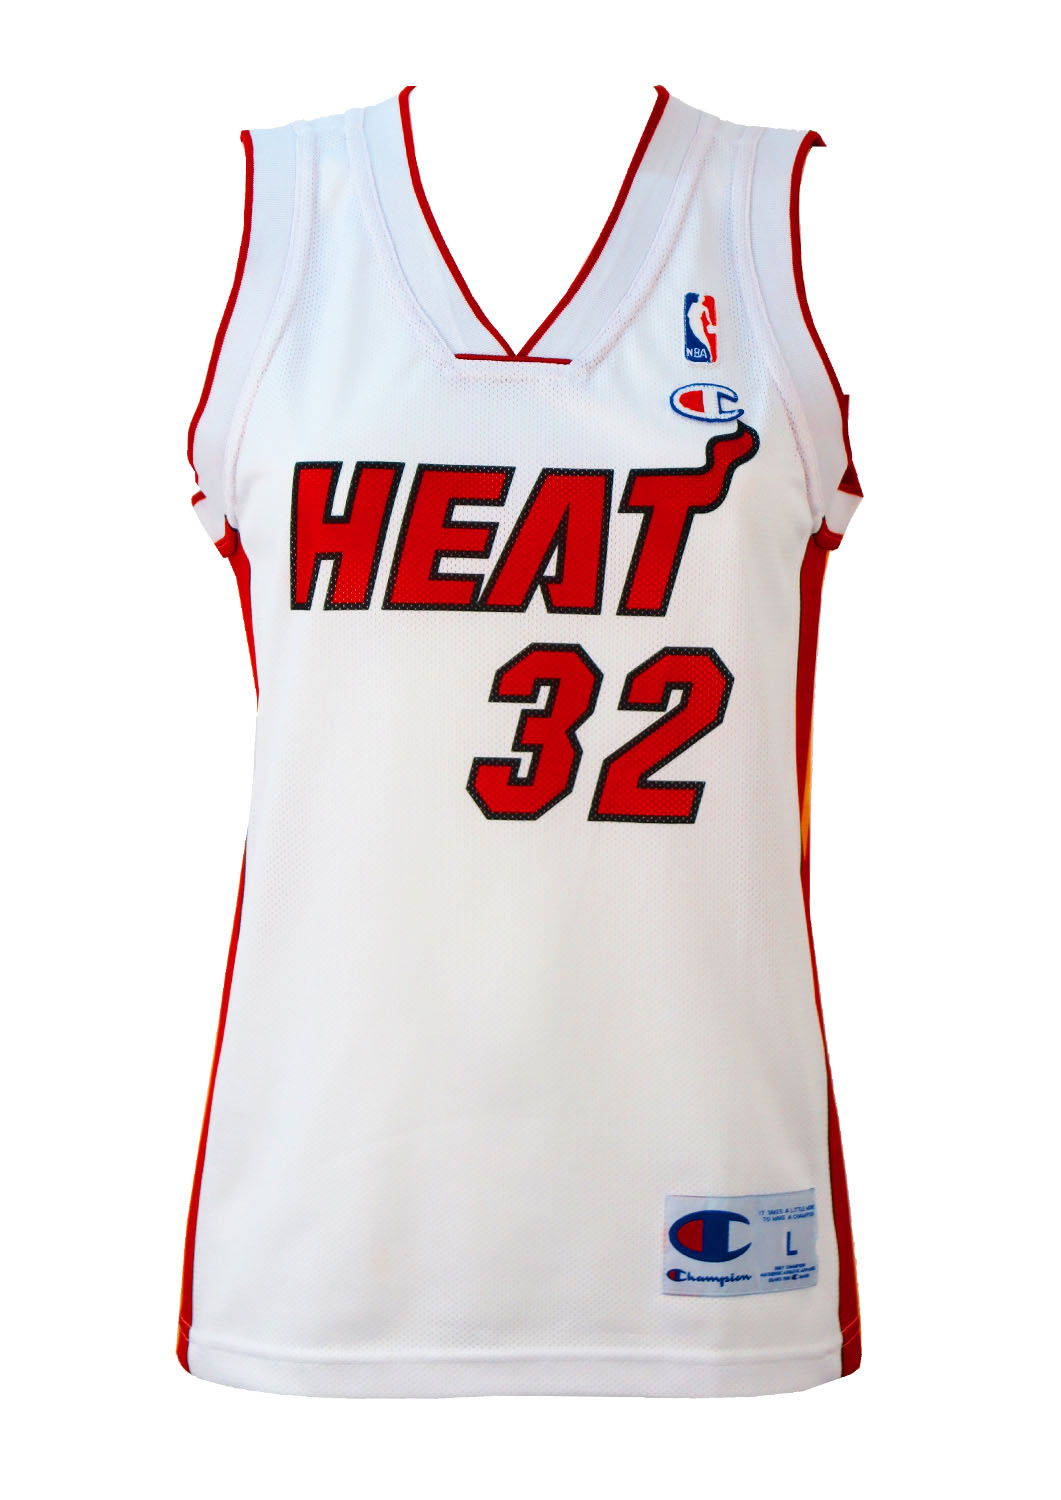 Champion NBA White   Red  O Neal  Basketball Vest – S M – Reign Vintage 459f64684e1c